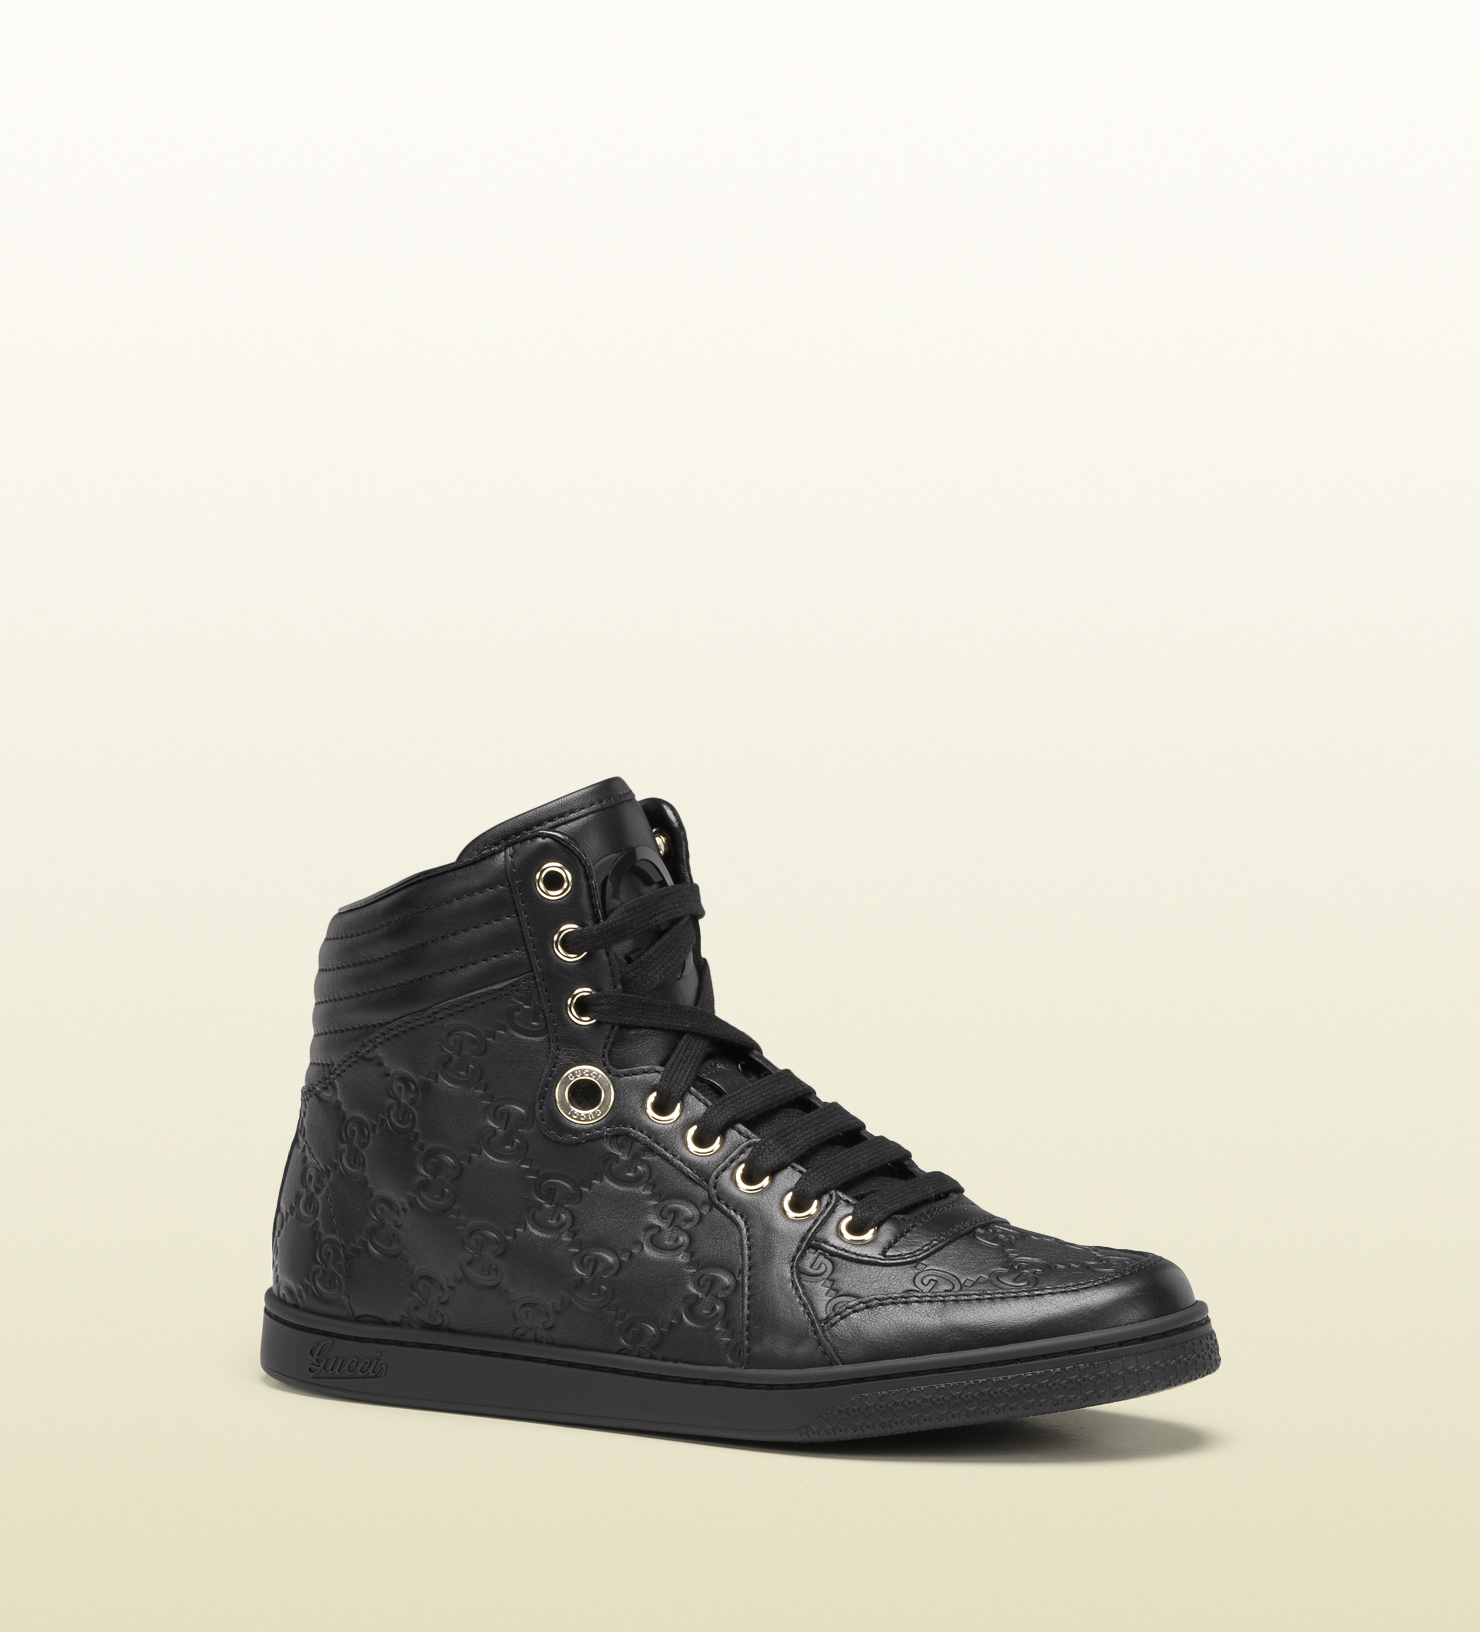 c2553f87719 Gucci Coda Black Guccissima Leather Hightop Sneaker in Black for Men ...